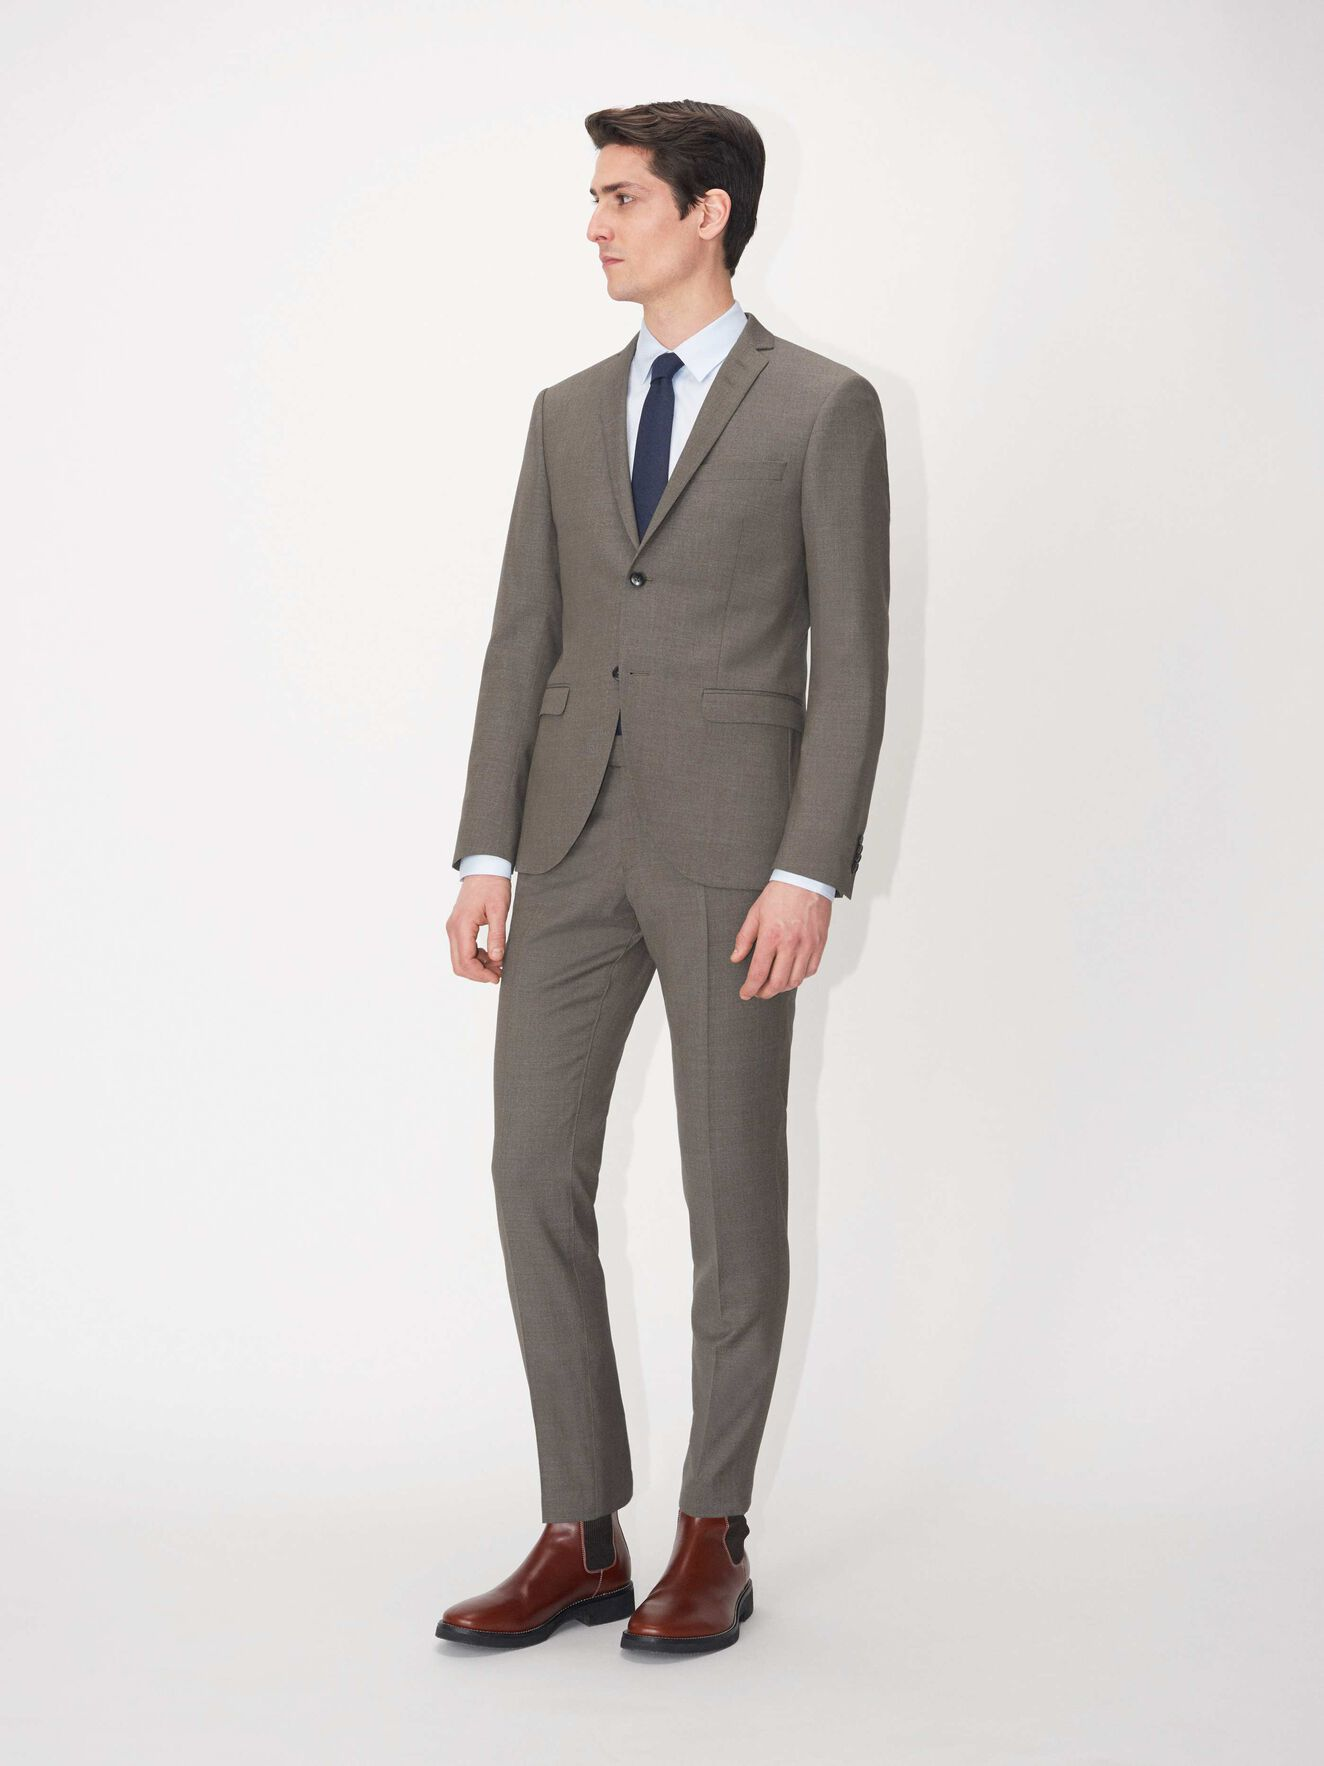 S.Jile Suit in Caribou from Tiger of Sweden